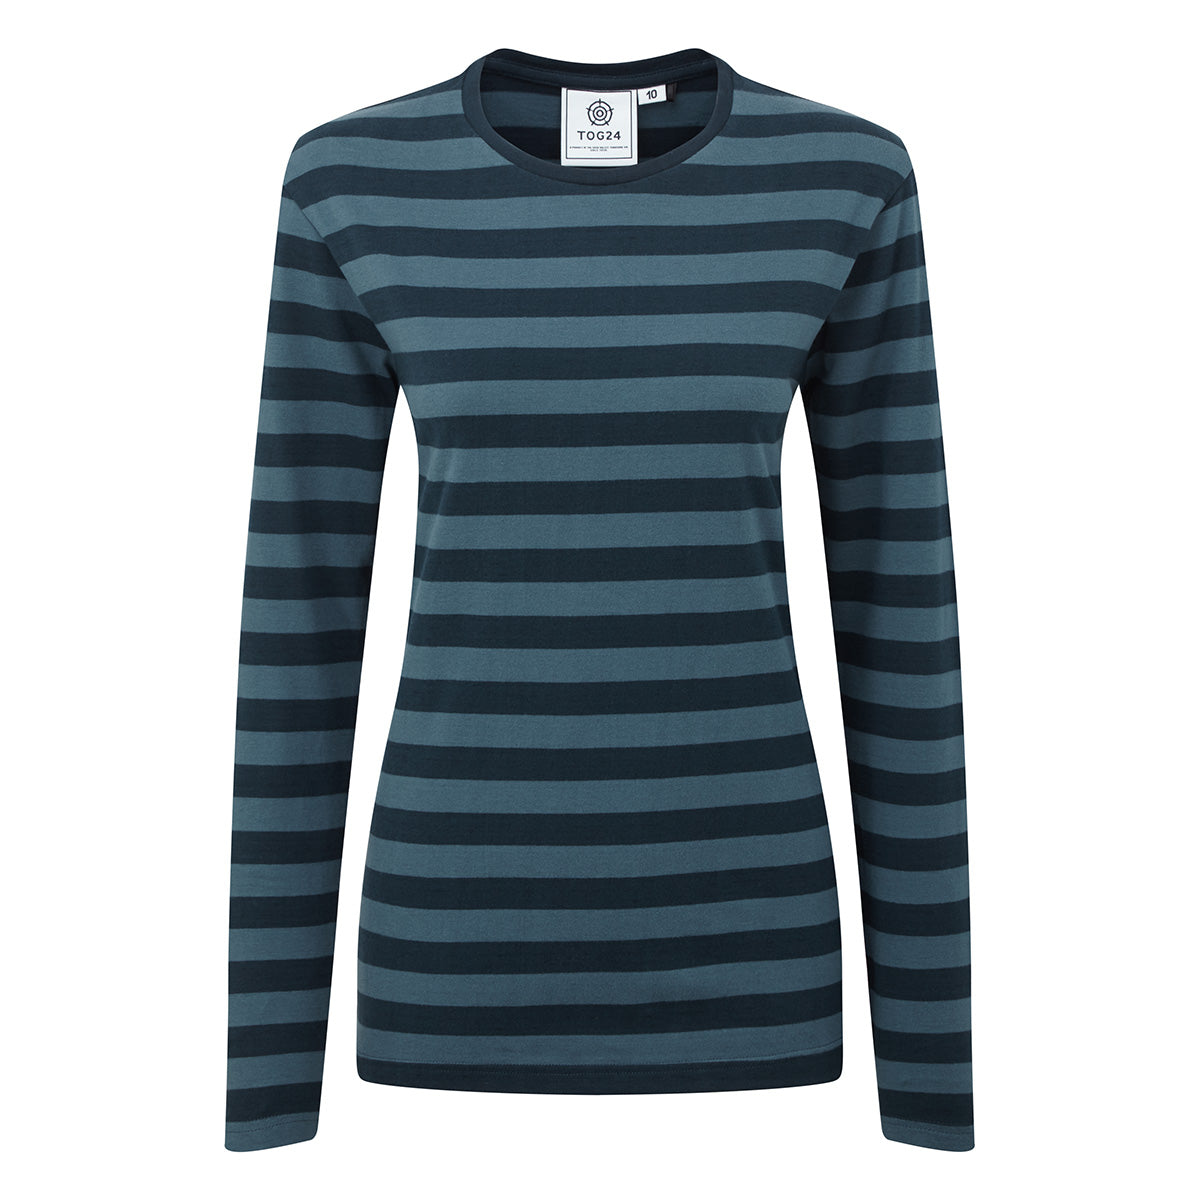 Holmfield Womens Long Sleeve Stripe T-Shirt - Navy image 4